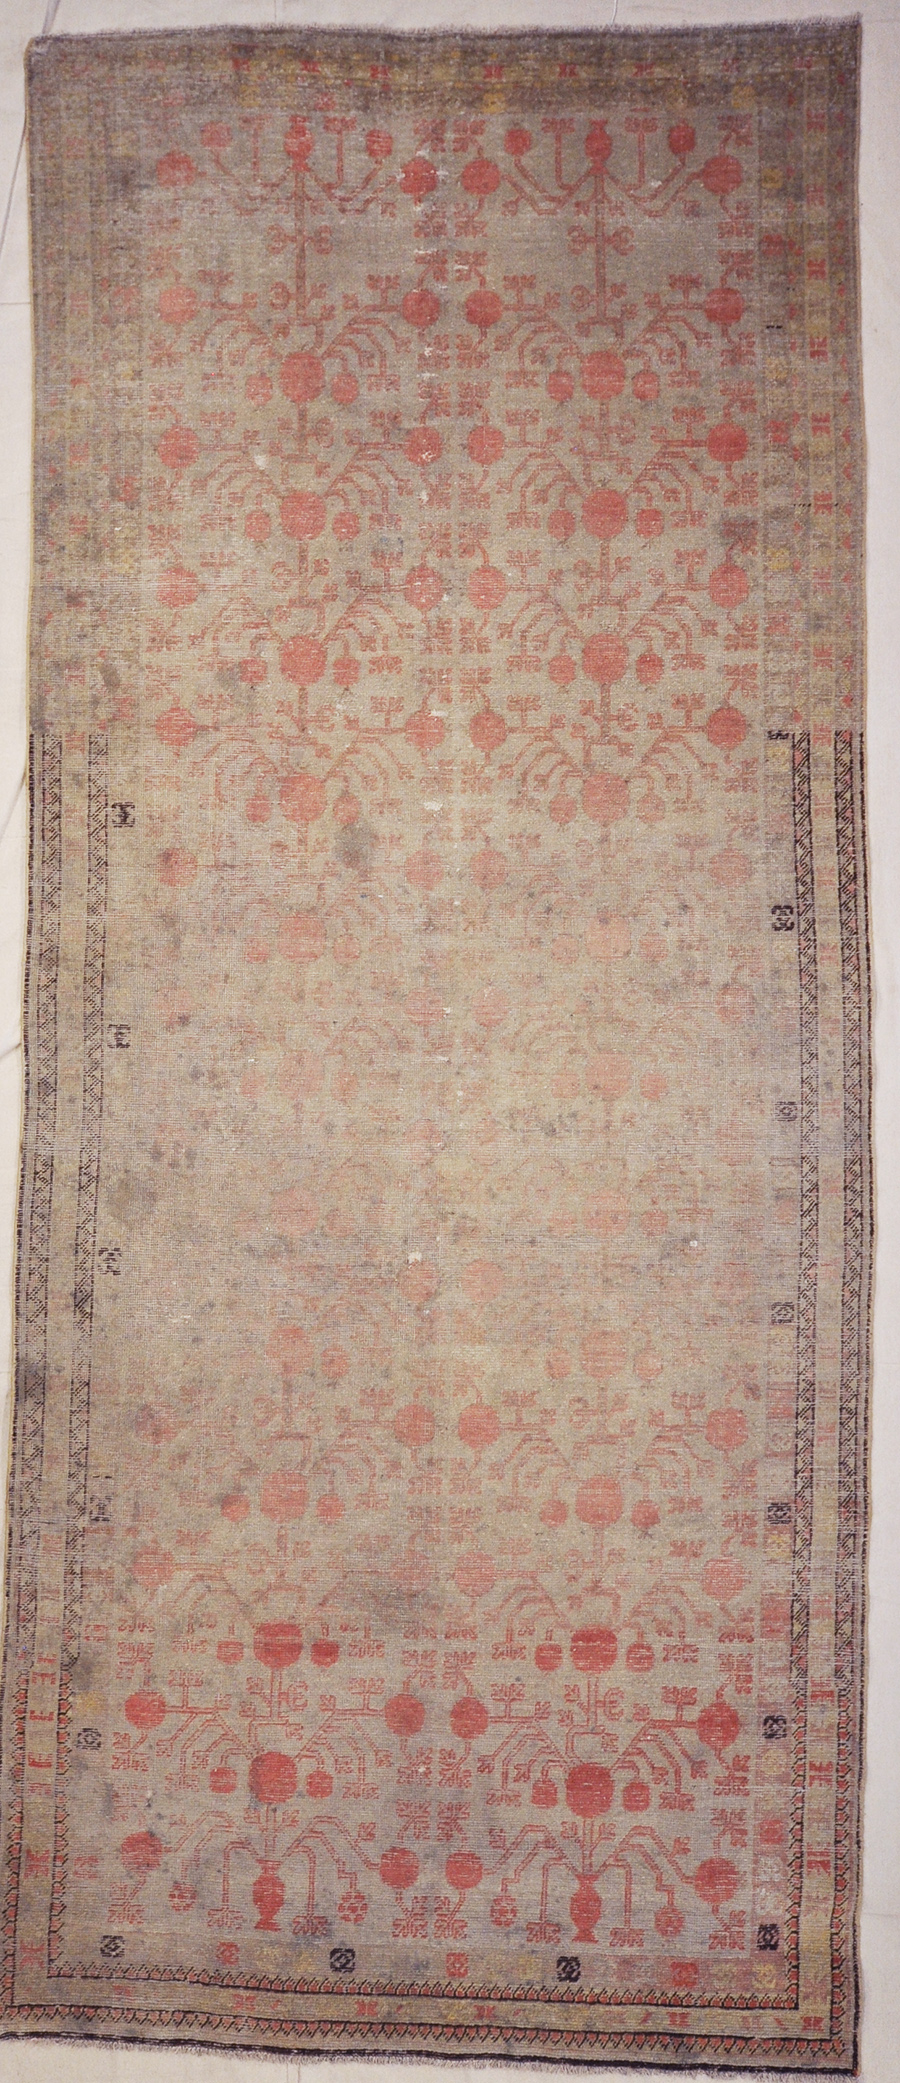 Antique Khotan Rugs & More Oriental Carpets 27804.